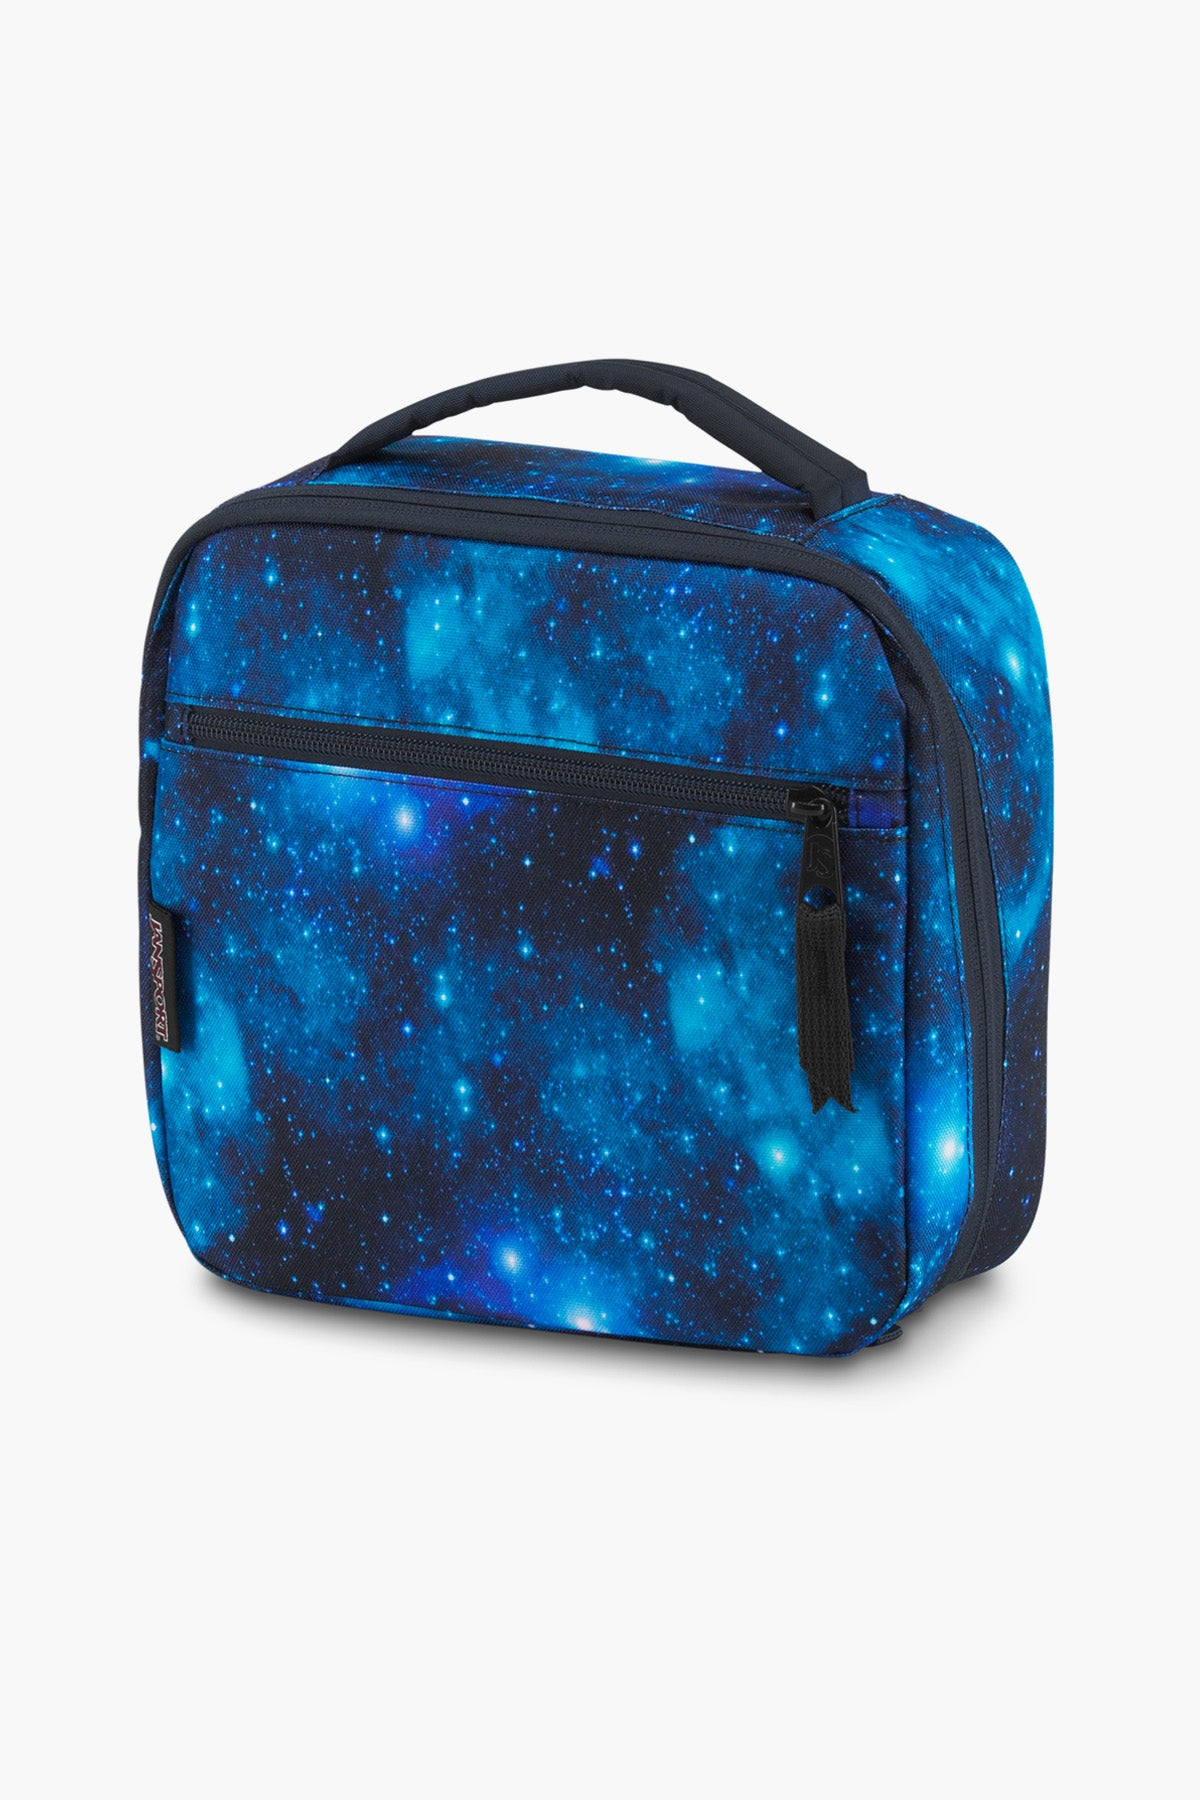 JanSport Lunch Break Lunchbox - Galaxy